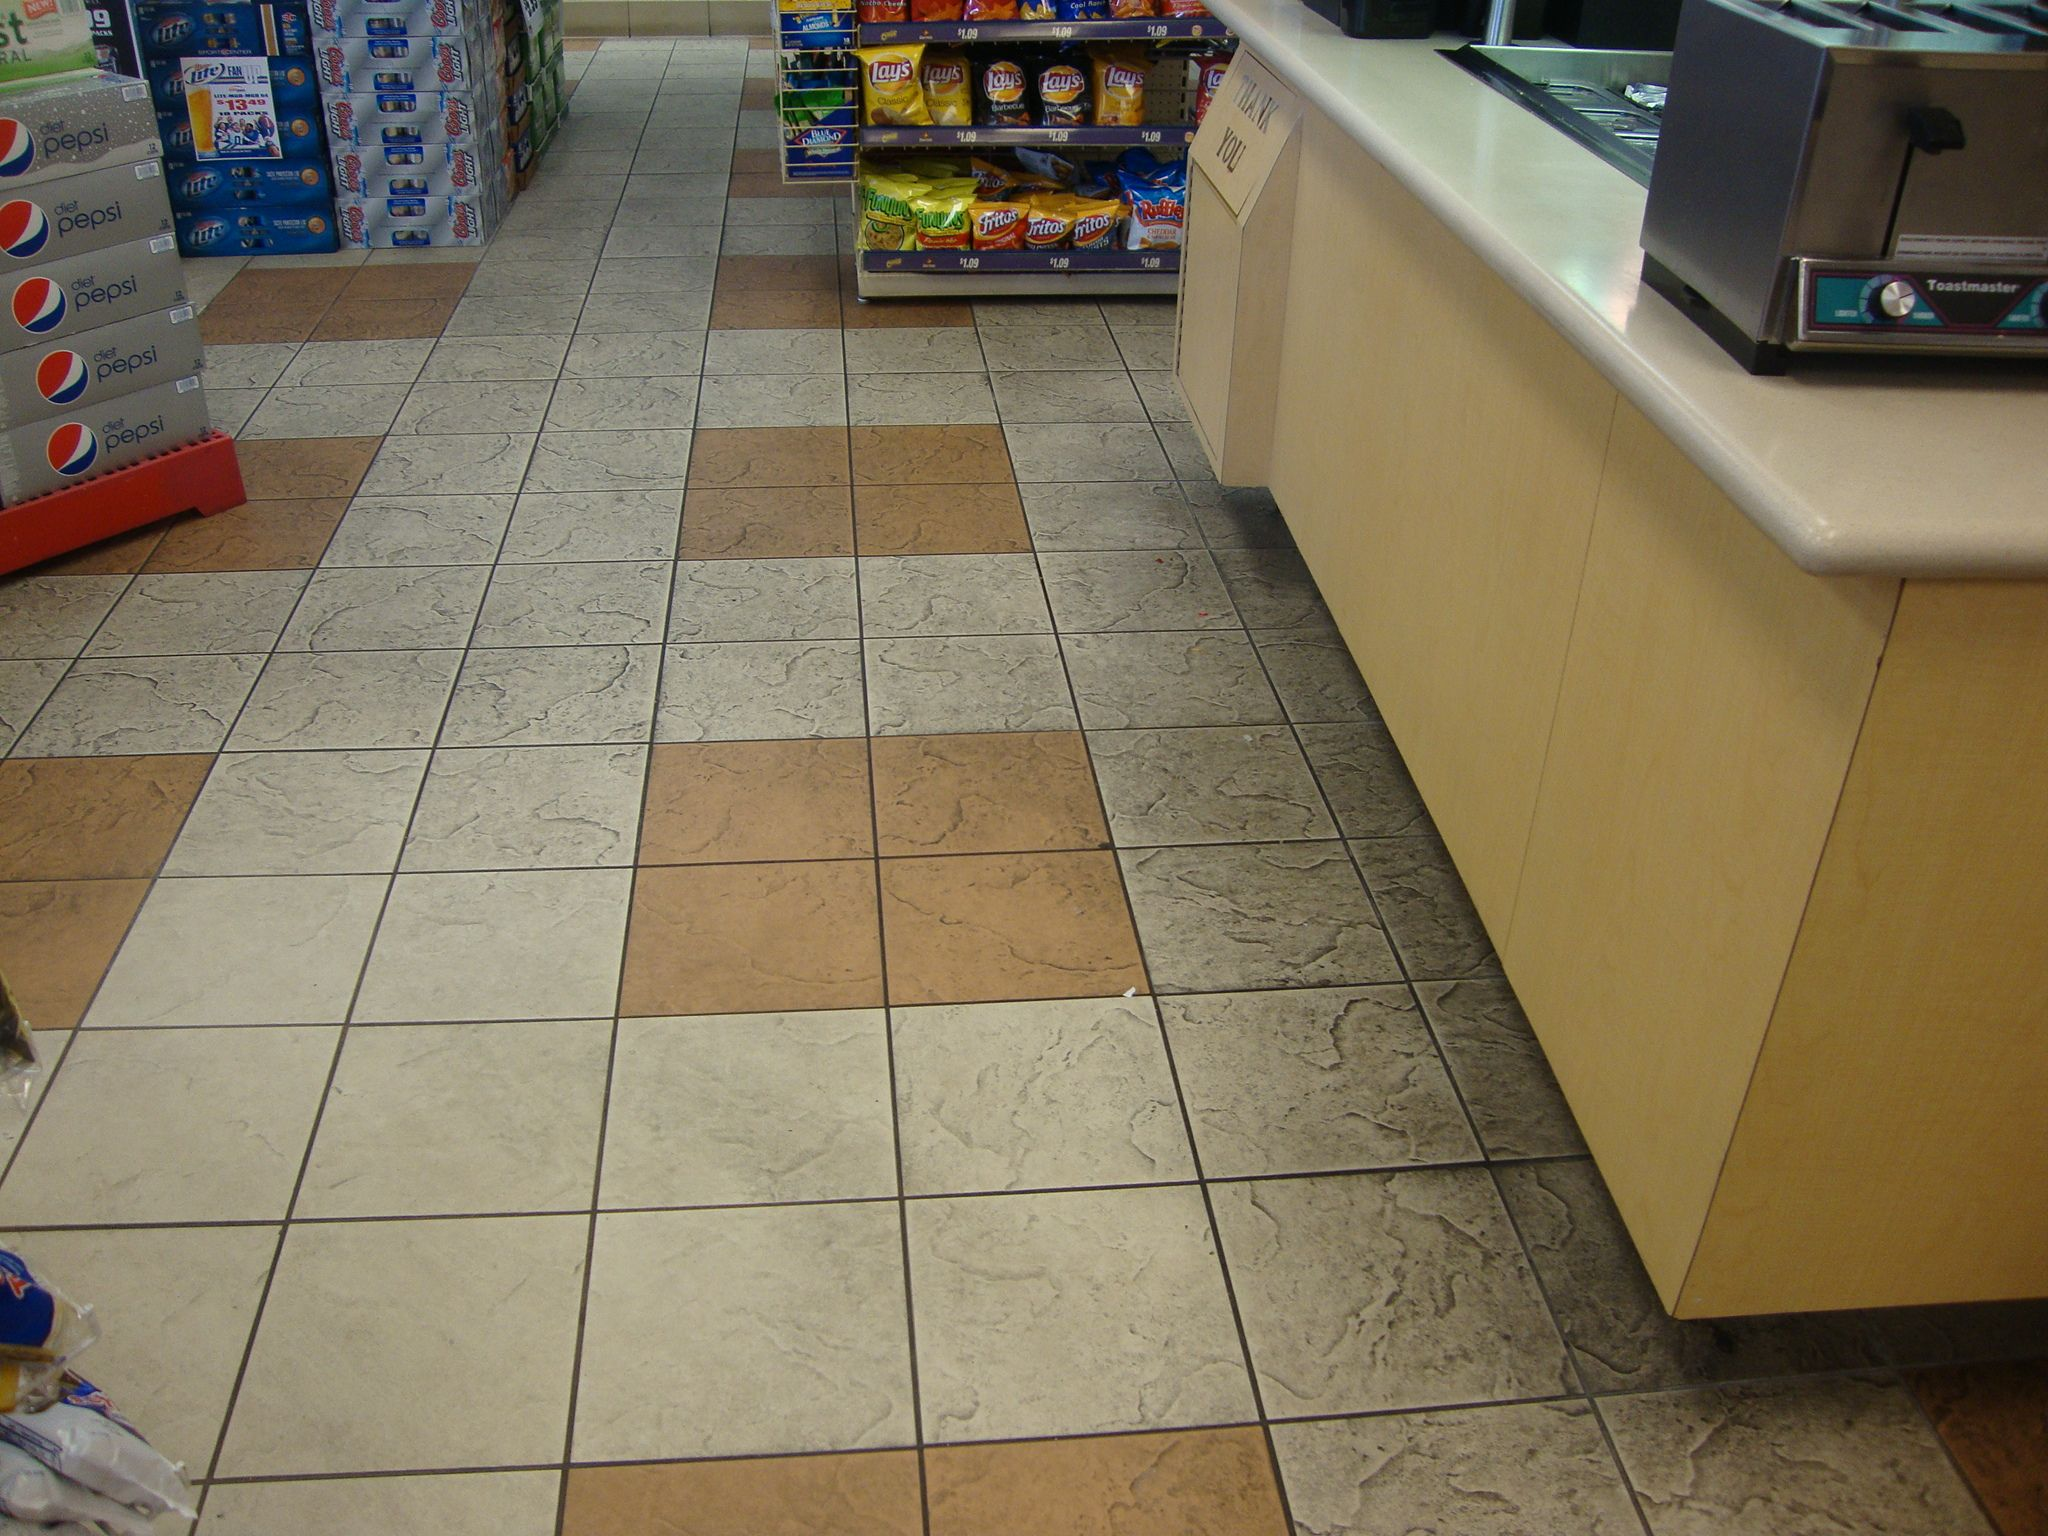 Image result for convenience store floor | BA3a - Convenience ...